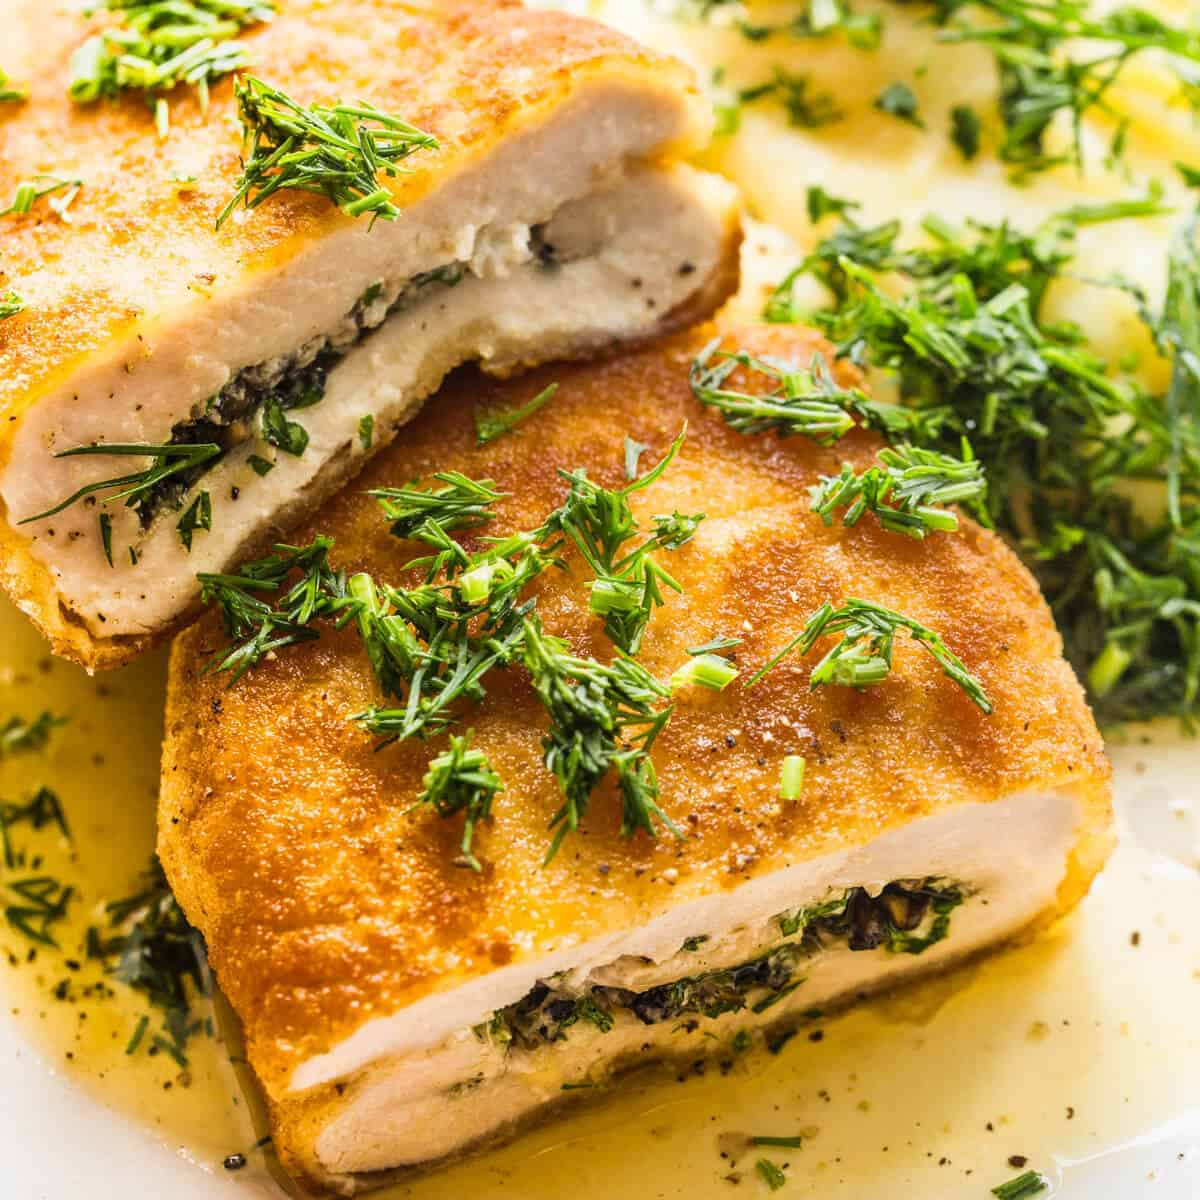 chicken kiev with mashed potatoes and dill